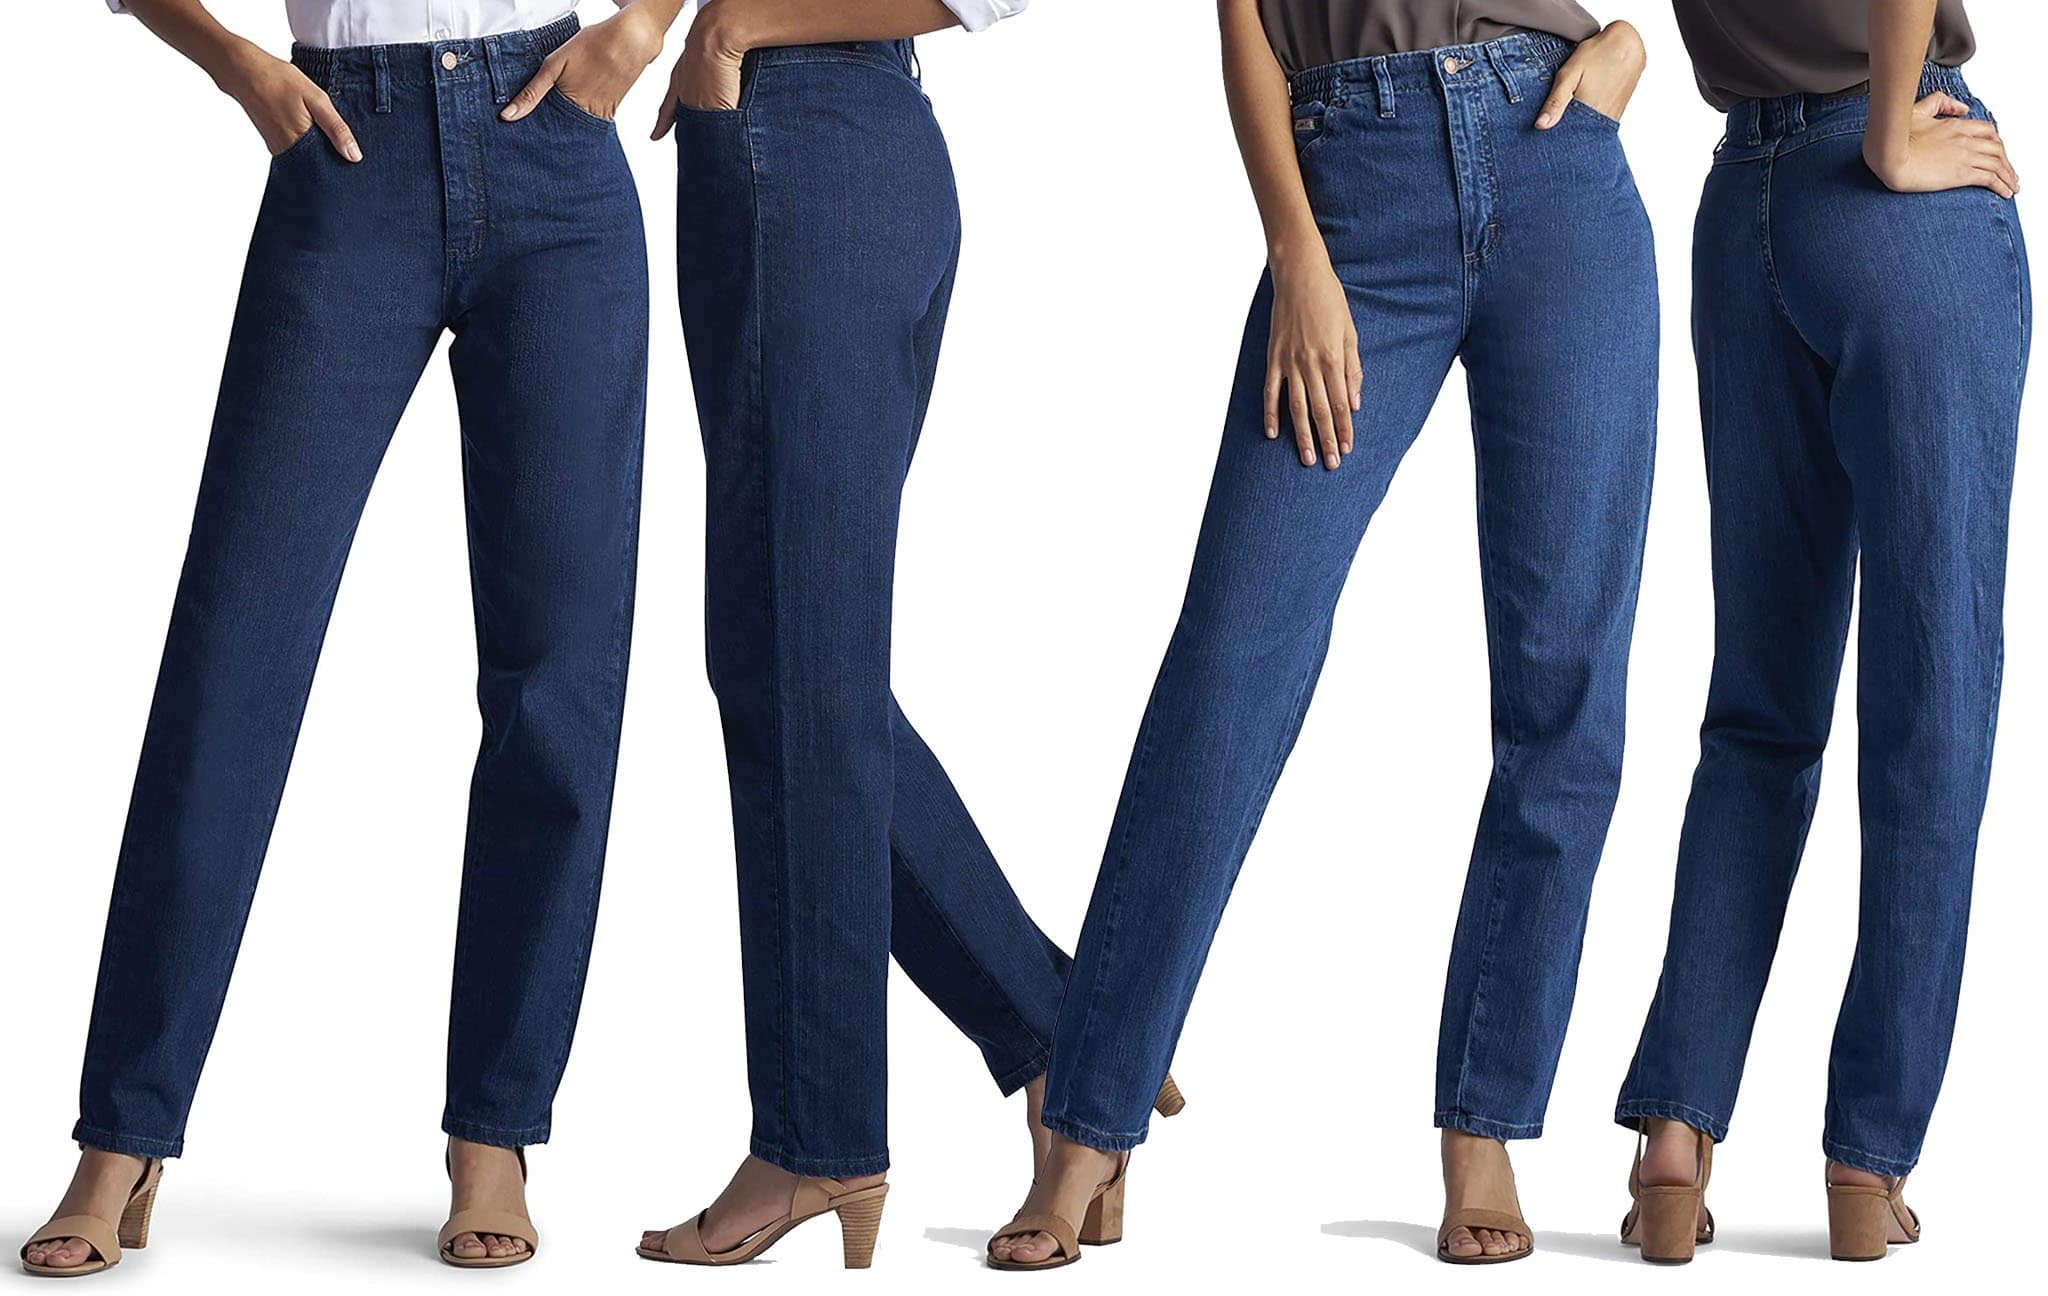 A comfortable pair of mid-rise relaxed fit jeans constructed with an elasticated waistband, making this pair the easiest denim you've ever worn